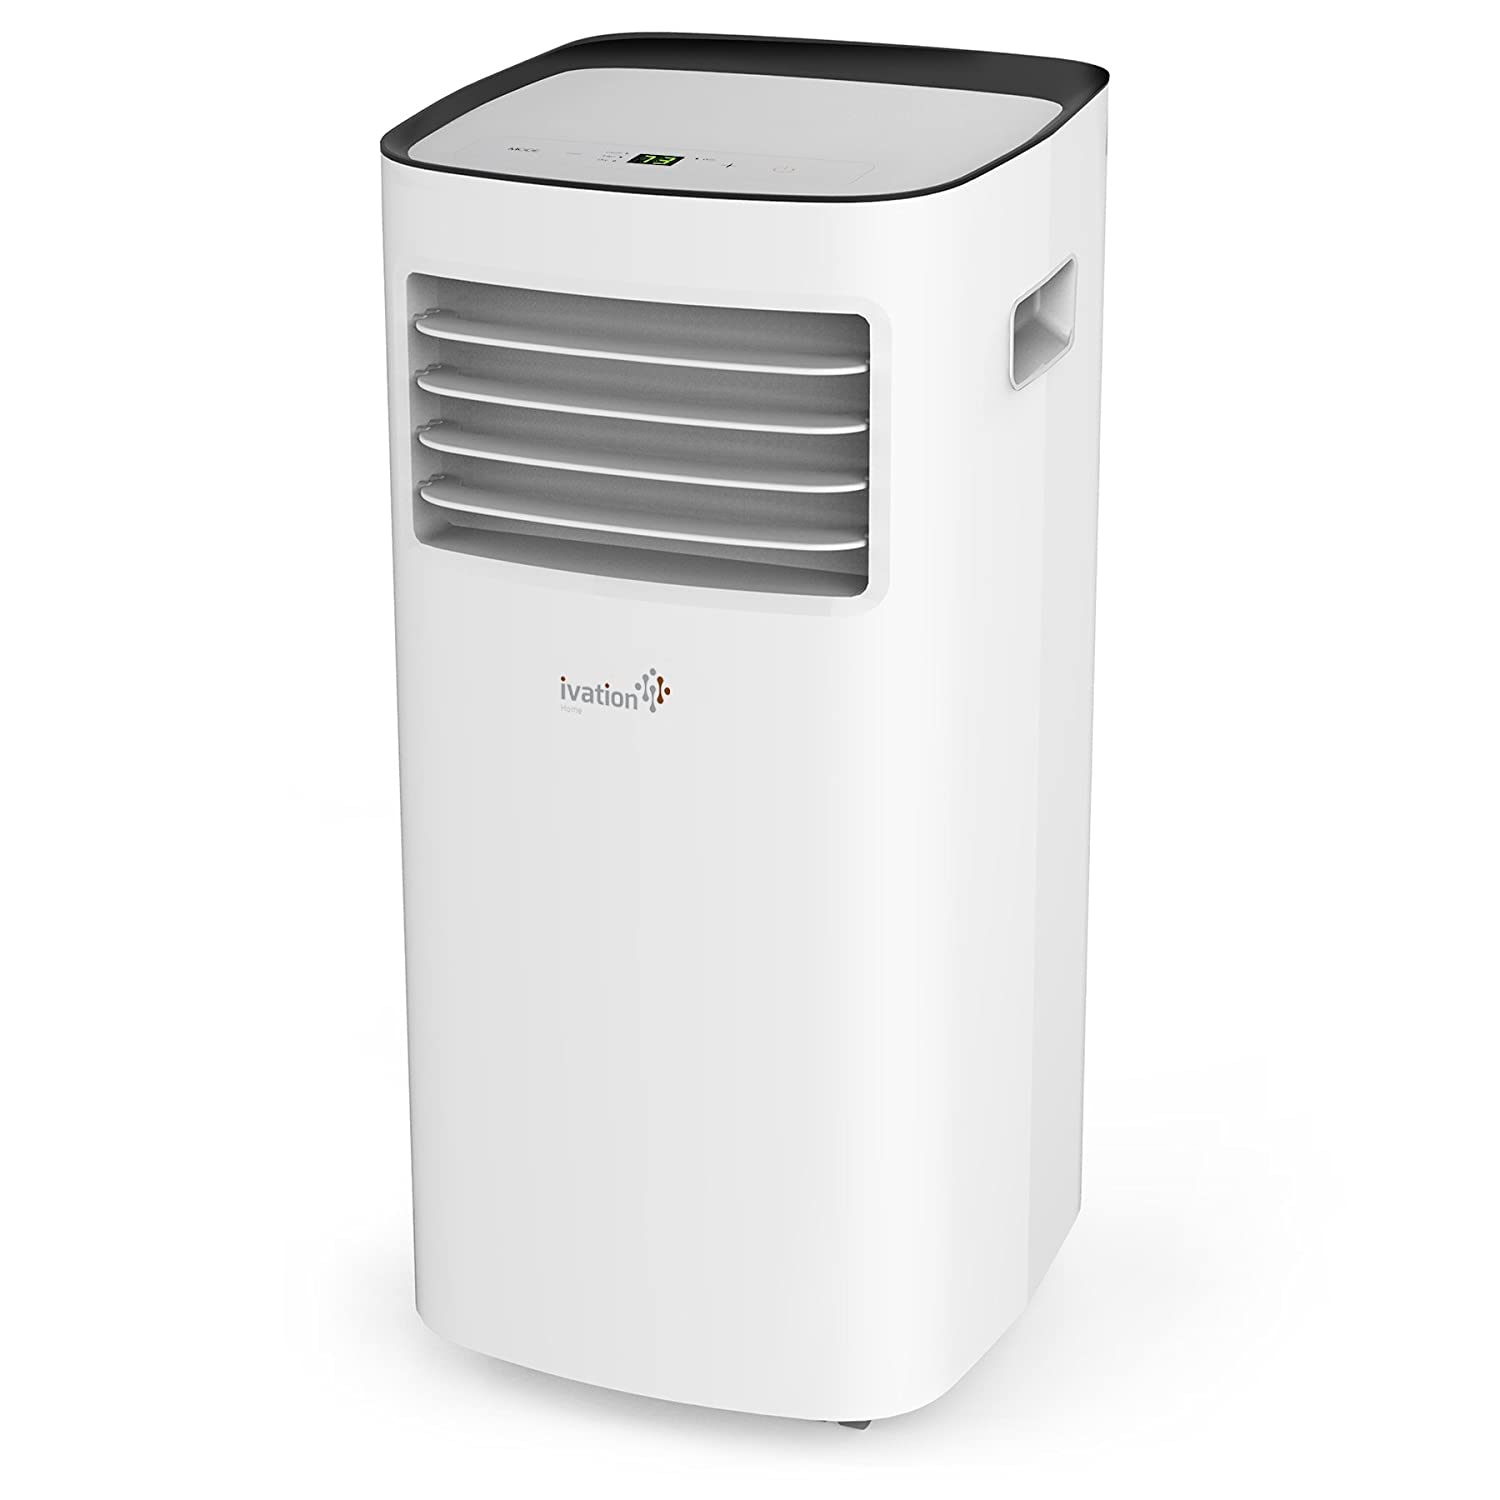 Ivation 10,000 BTU Portable Air Conditioner – Compact Single-Hose AC Unit & Dehumidifier w/Remote Control, Digital LED Display & Multi-Mode Function - 400 Sq/Ft Coverage IVAPAC10KBTU